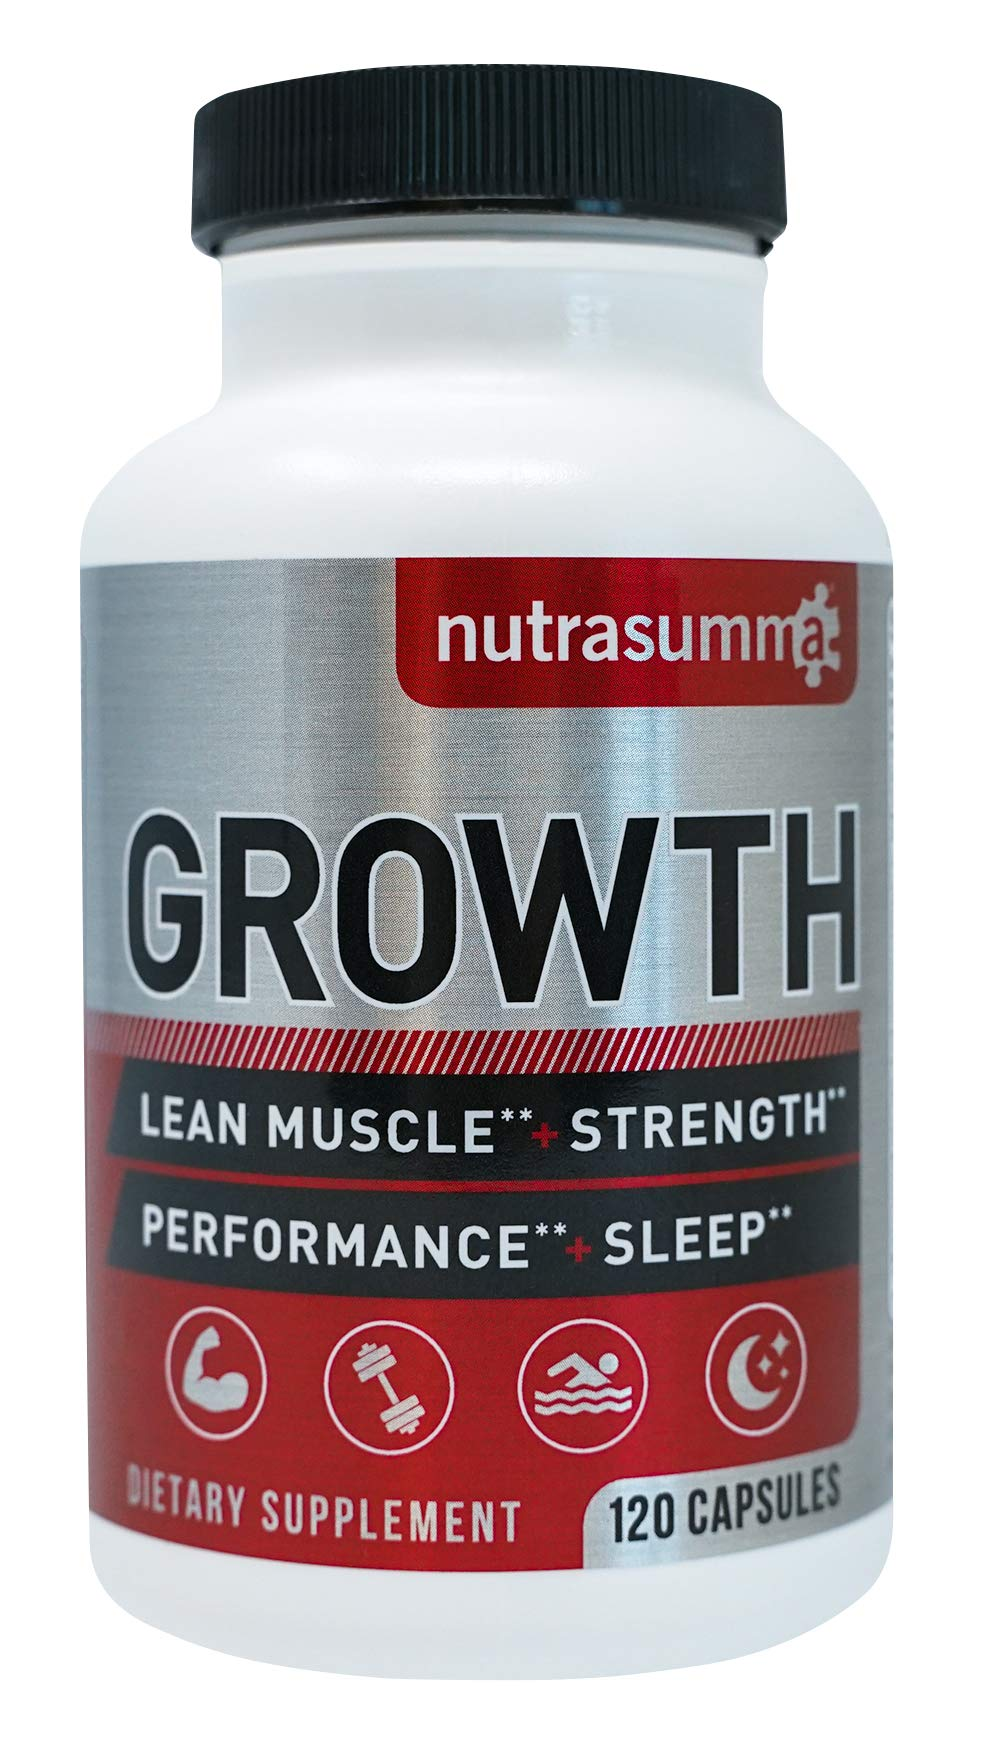 Nutrasumma Growth Hormone Supplement - 120 Capsules Natural Vitamins & Minerals, Lean Muscle Growth, Strength, Endurance & Recovery- Best Dietary Supplement by Nutrasumma